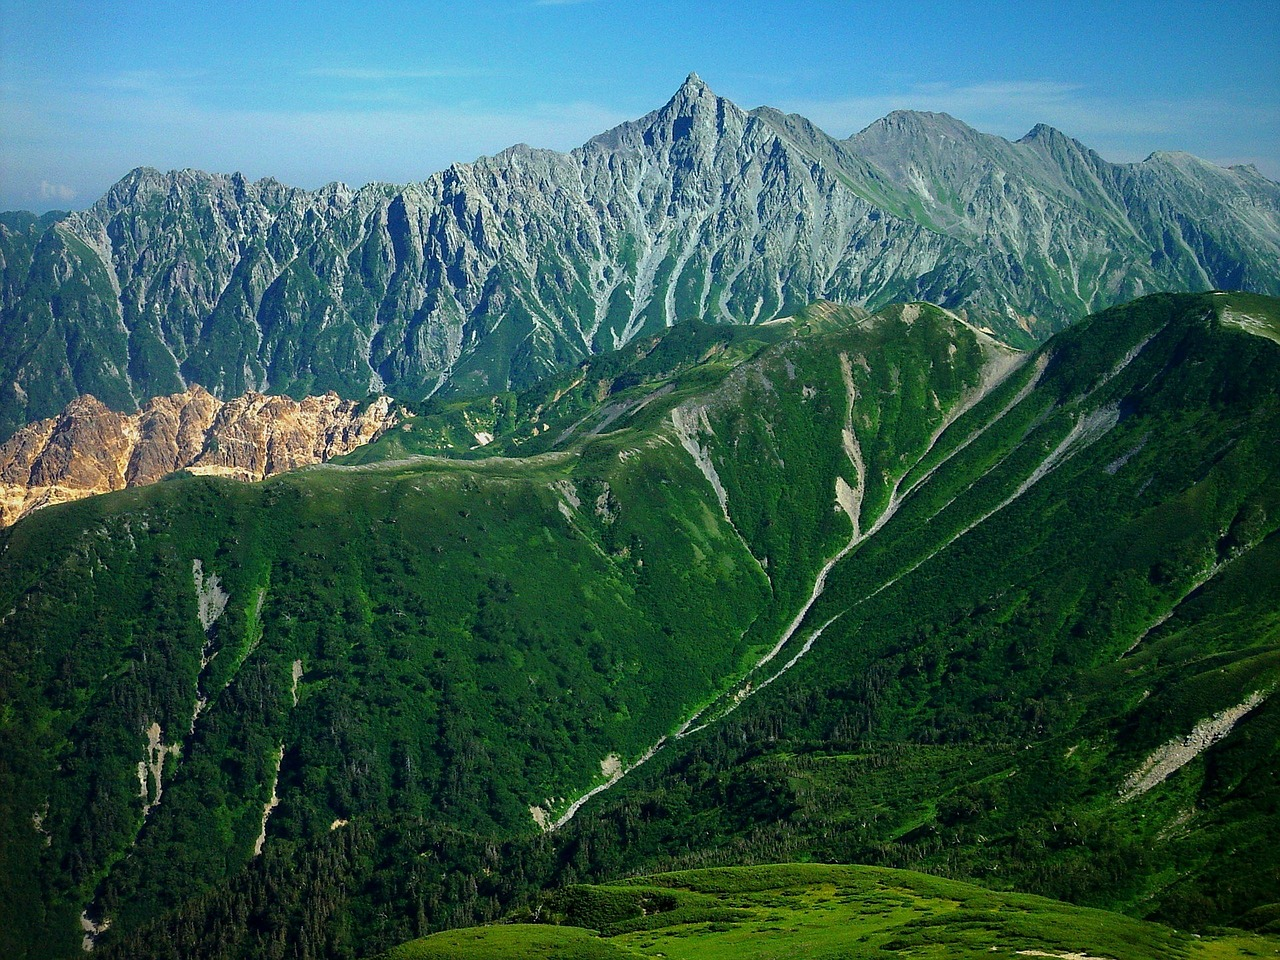 mount yari japan landscape free photo